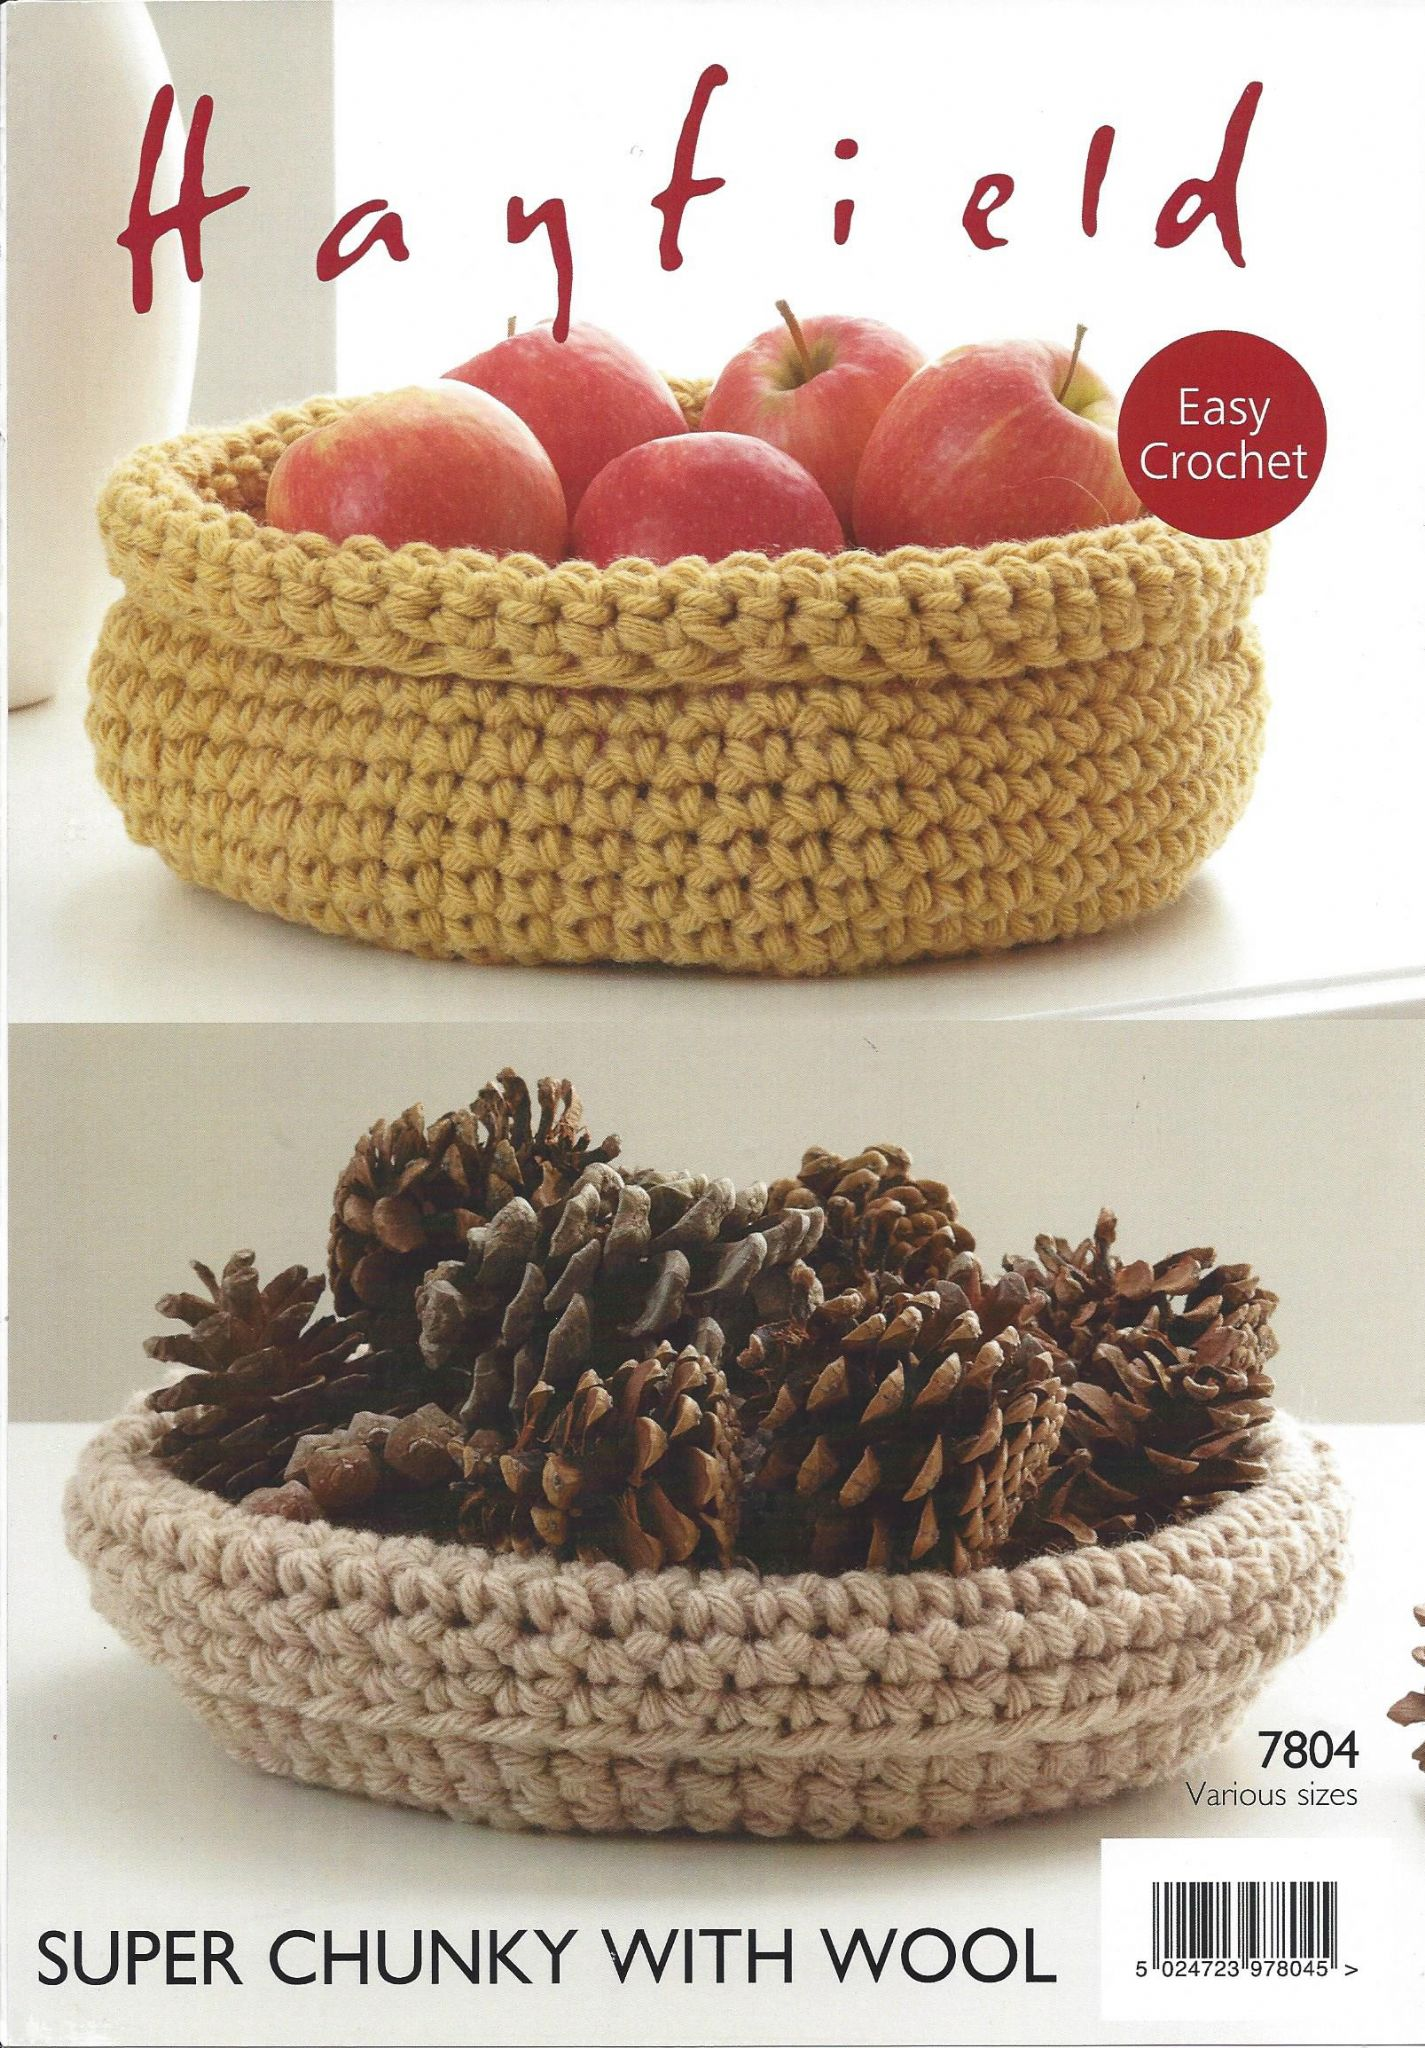 Super chunky with wool 7804 cat nest storage baskets crochet hayfield super chunky with wool 7804 cat nest storage baskets crochet pattern bankloansurffo Choice Image